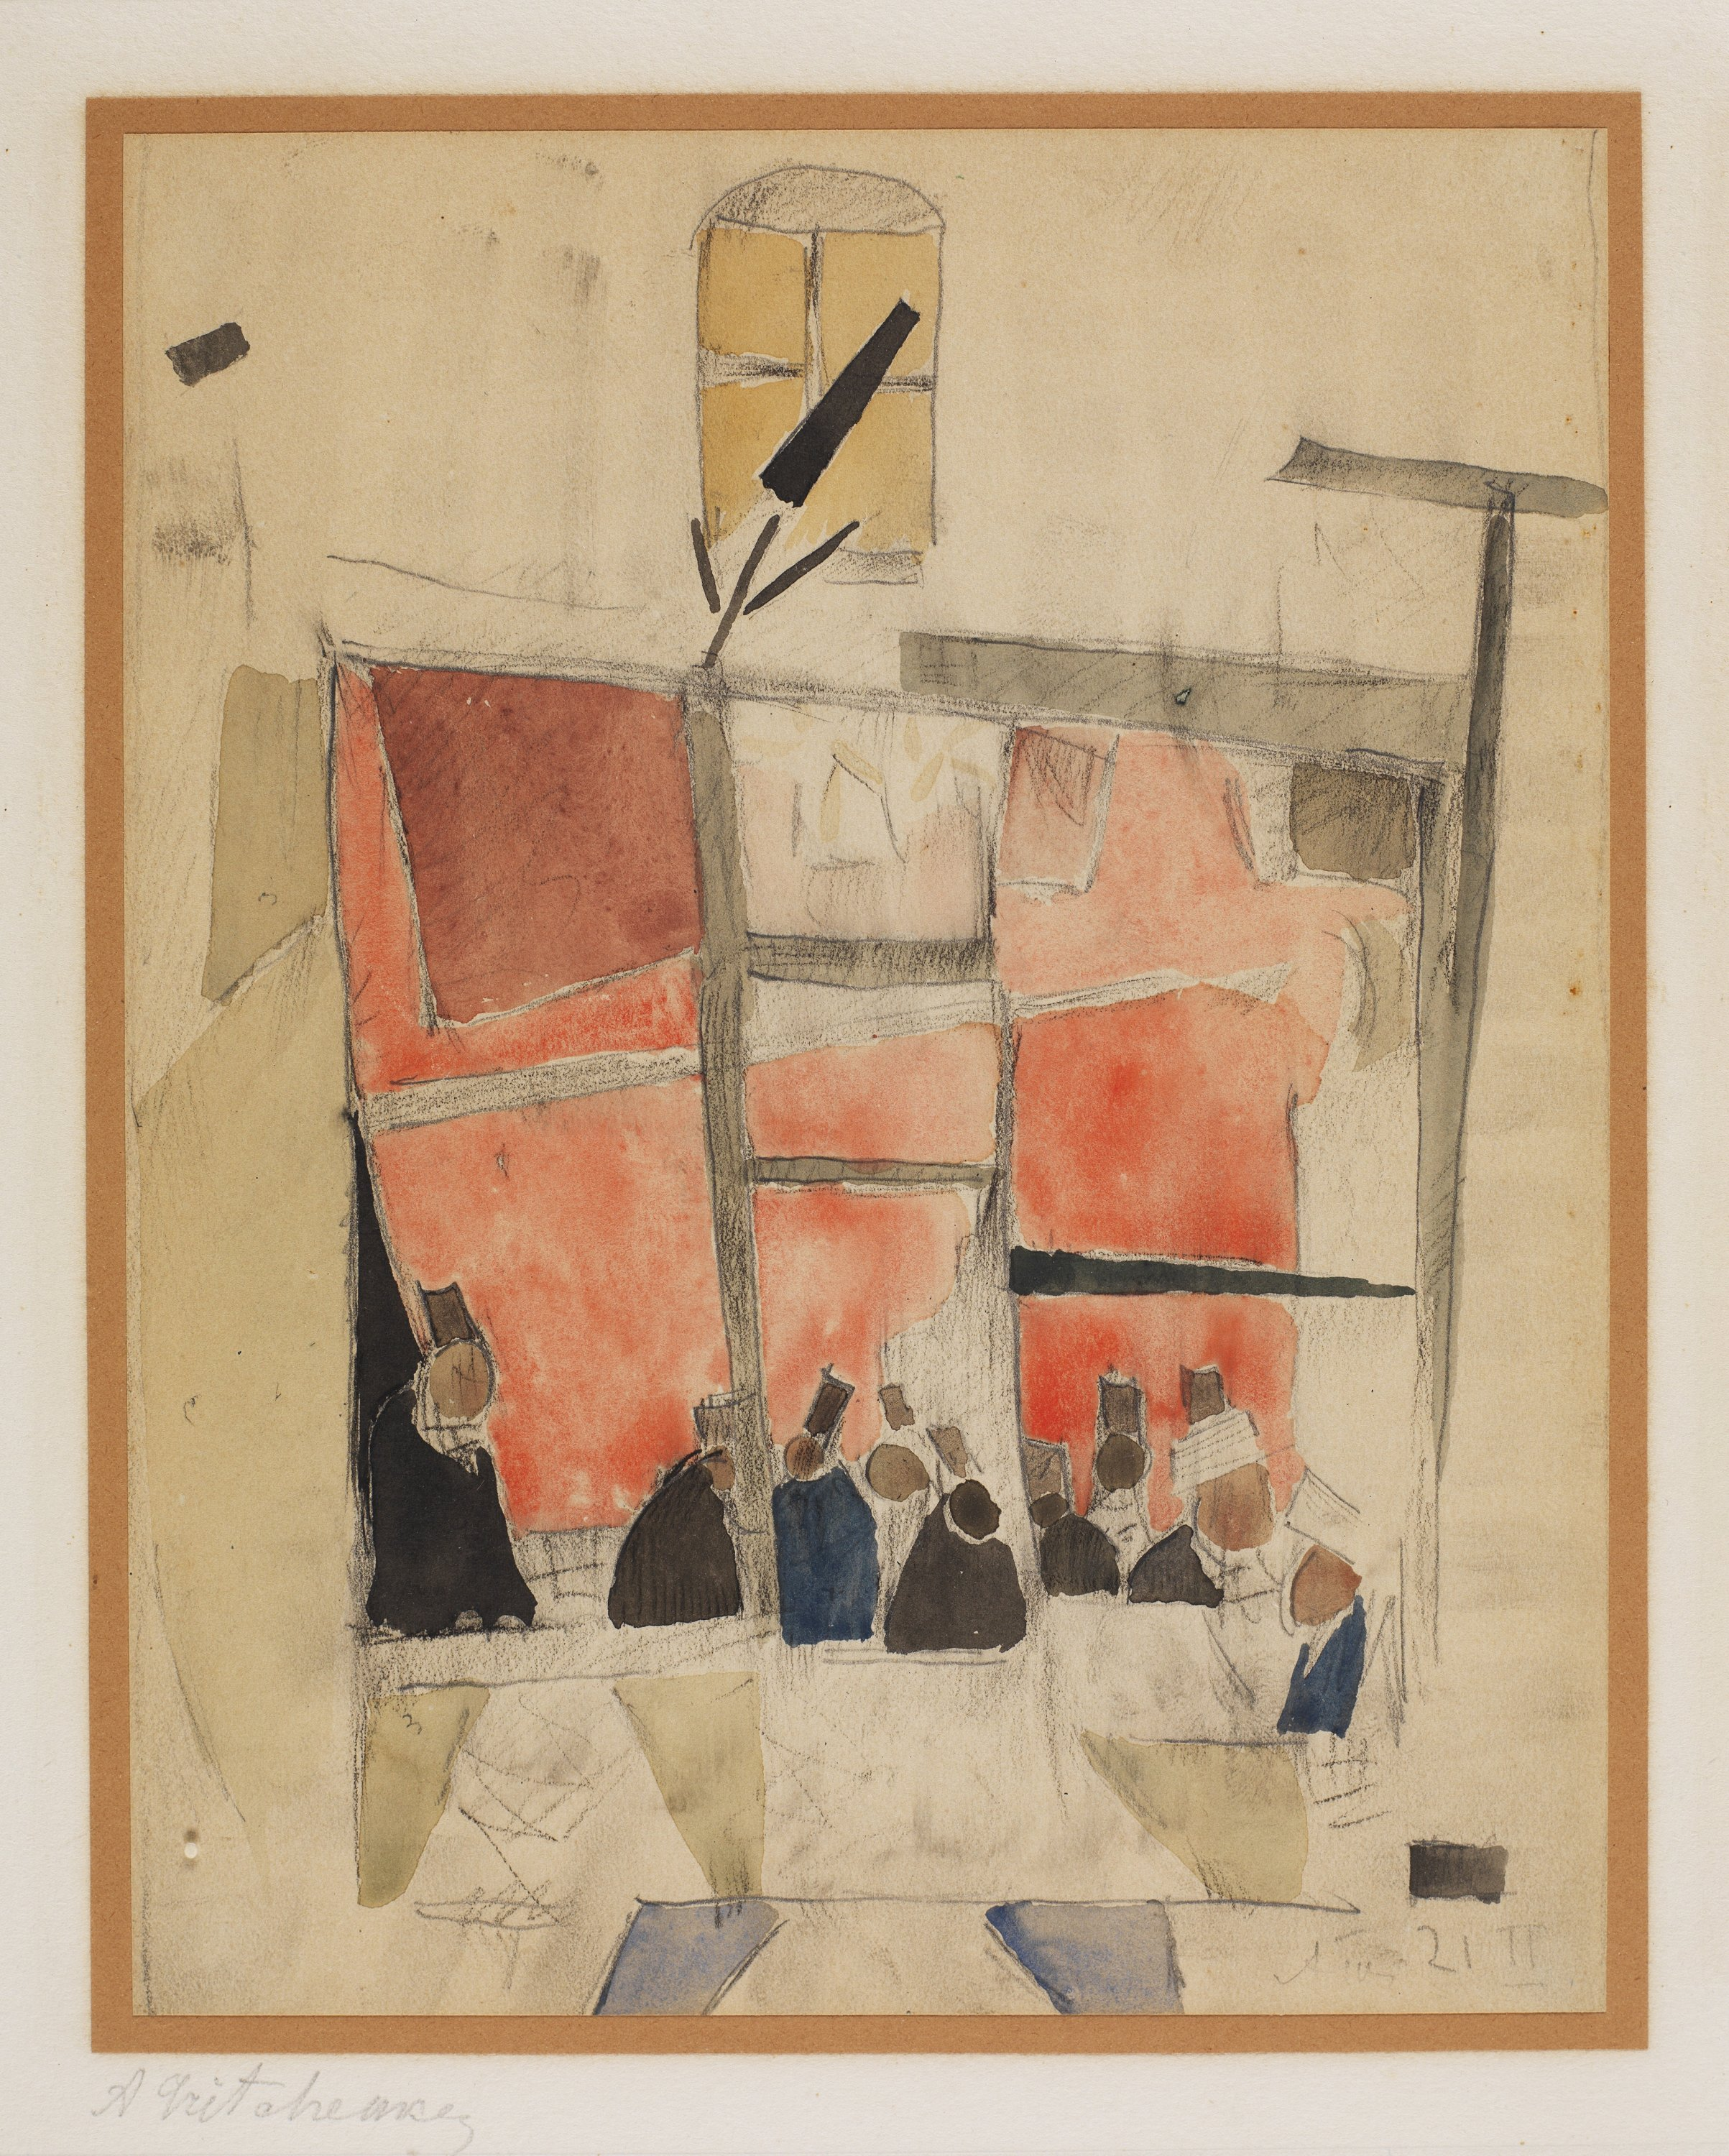 """Alexis Gritchenko, """"In the Coffeehouse,"""" February 1921, watercolor and pencil on paper, Ömer Koç collection, Turkey."""